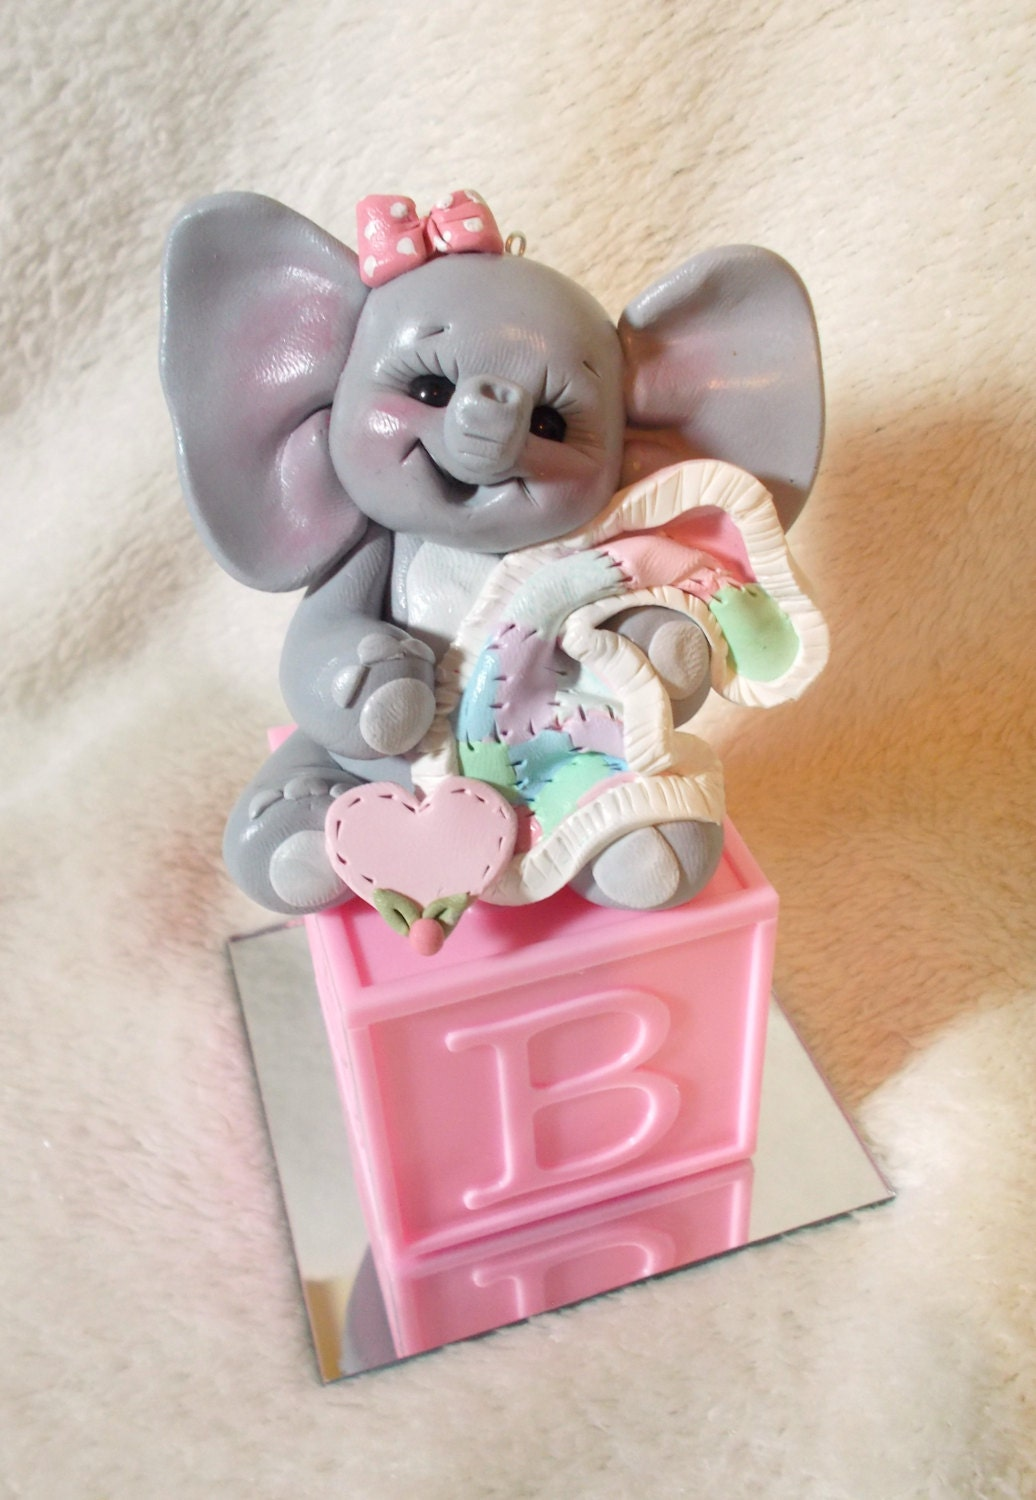 Exceptional Delightful Elephant Baby Shower Cake Topper Pink Baby Block Polymer Clay.  Unavailable Listing On Etsy